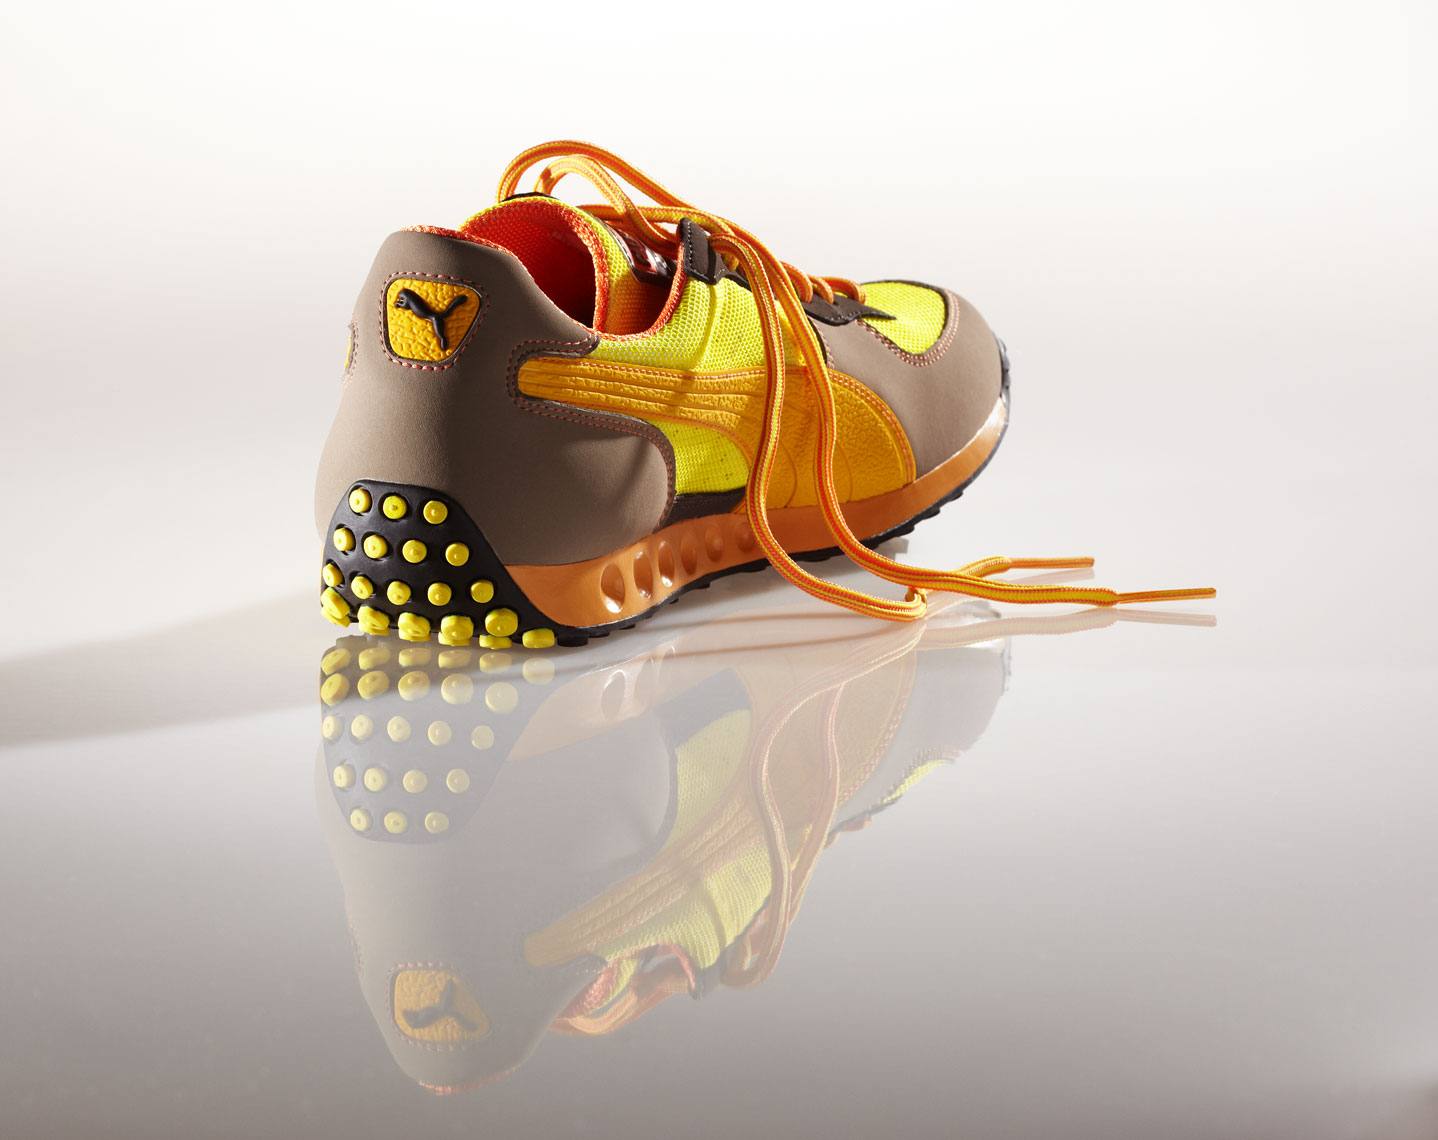 Product Photography Puma Gear Mens Fasion Casual Shoe Yellow Brown Orange with Reflection Chicago